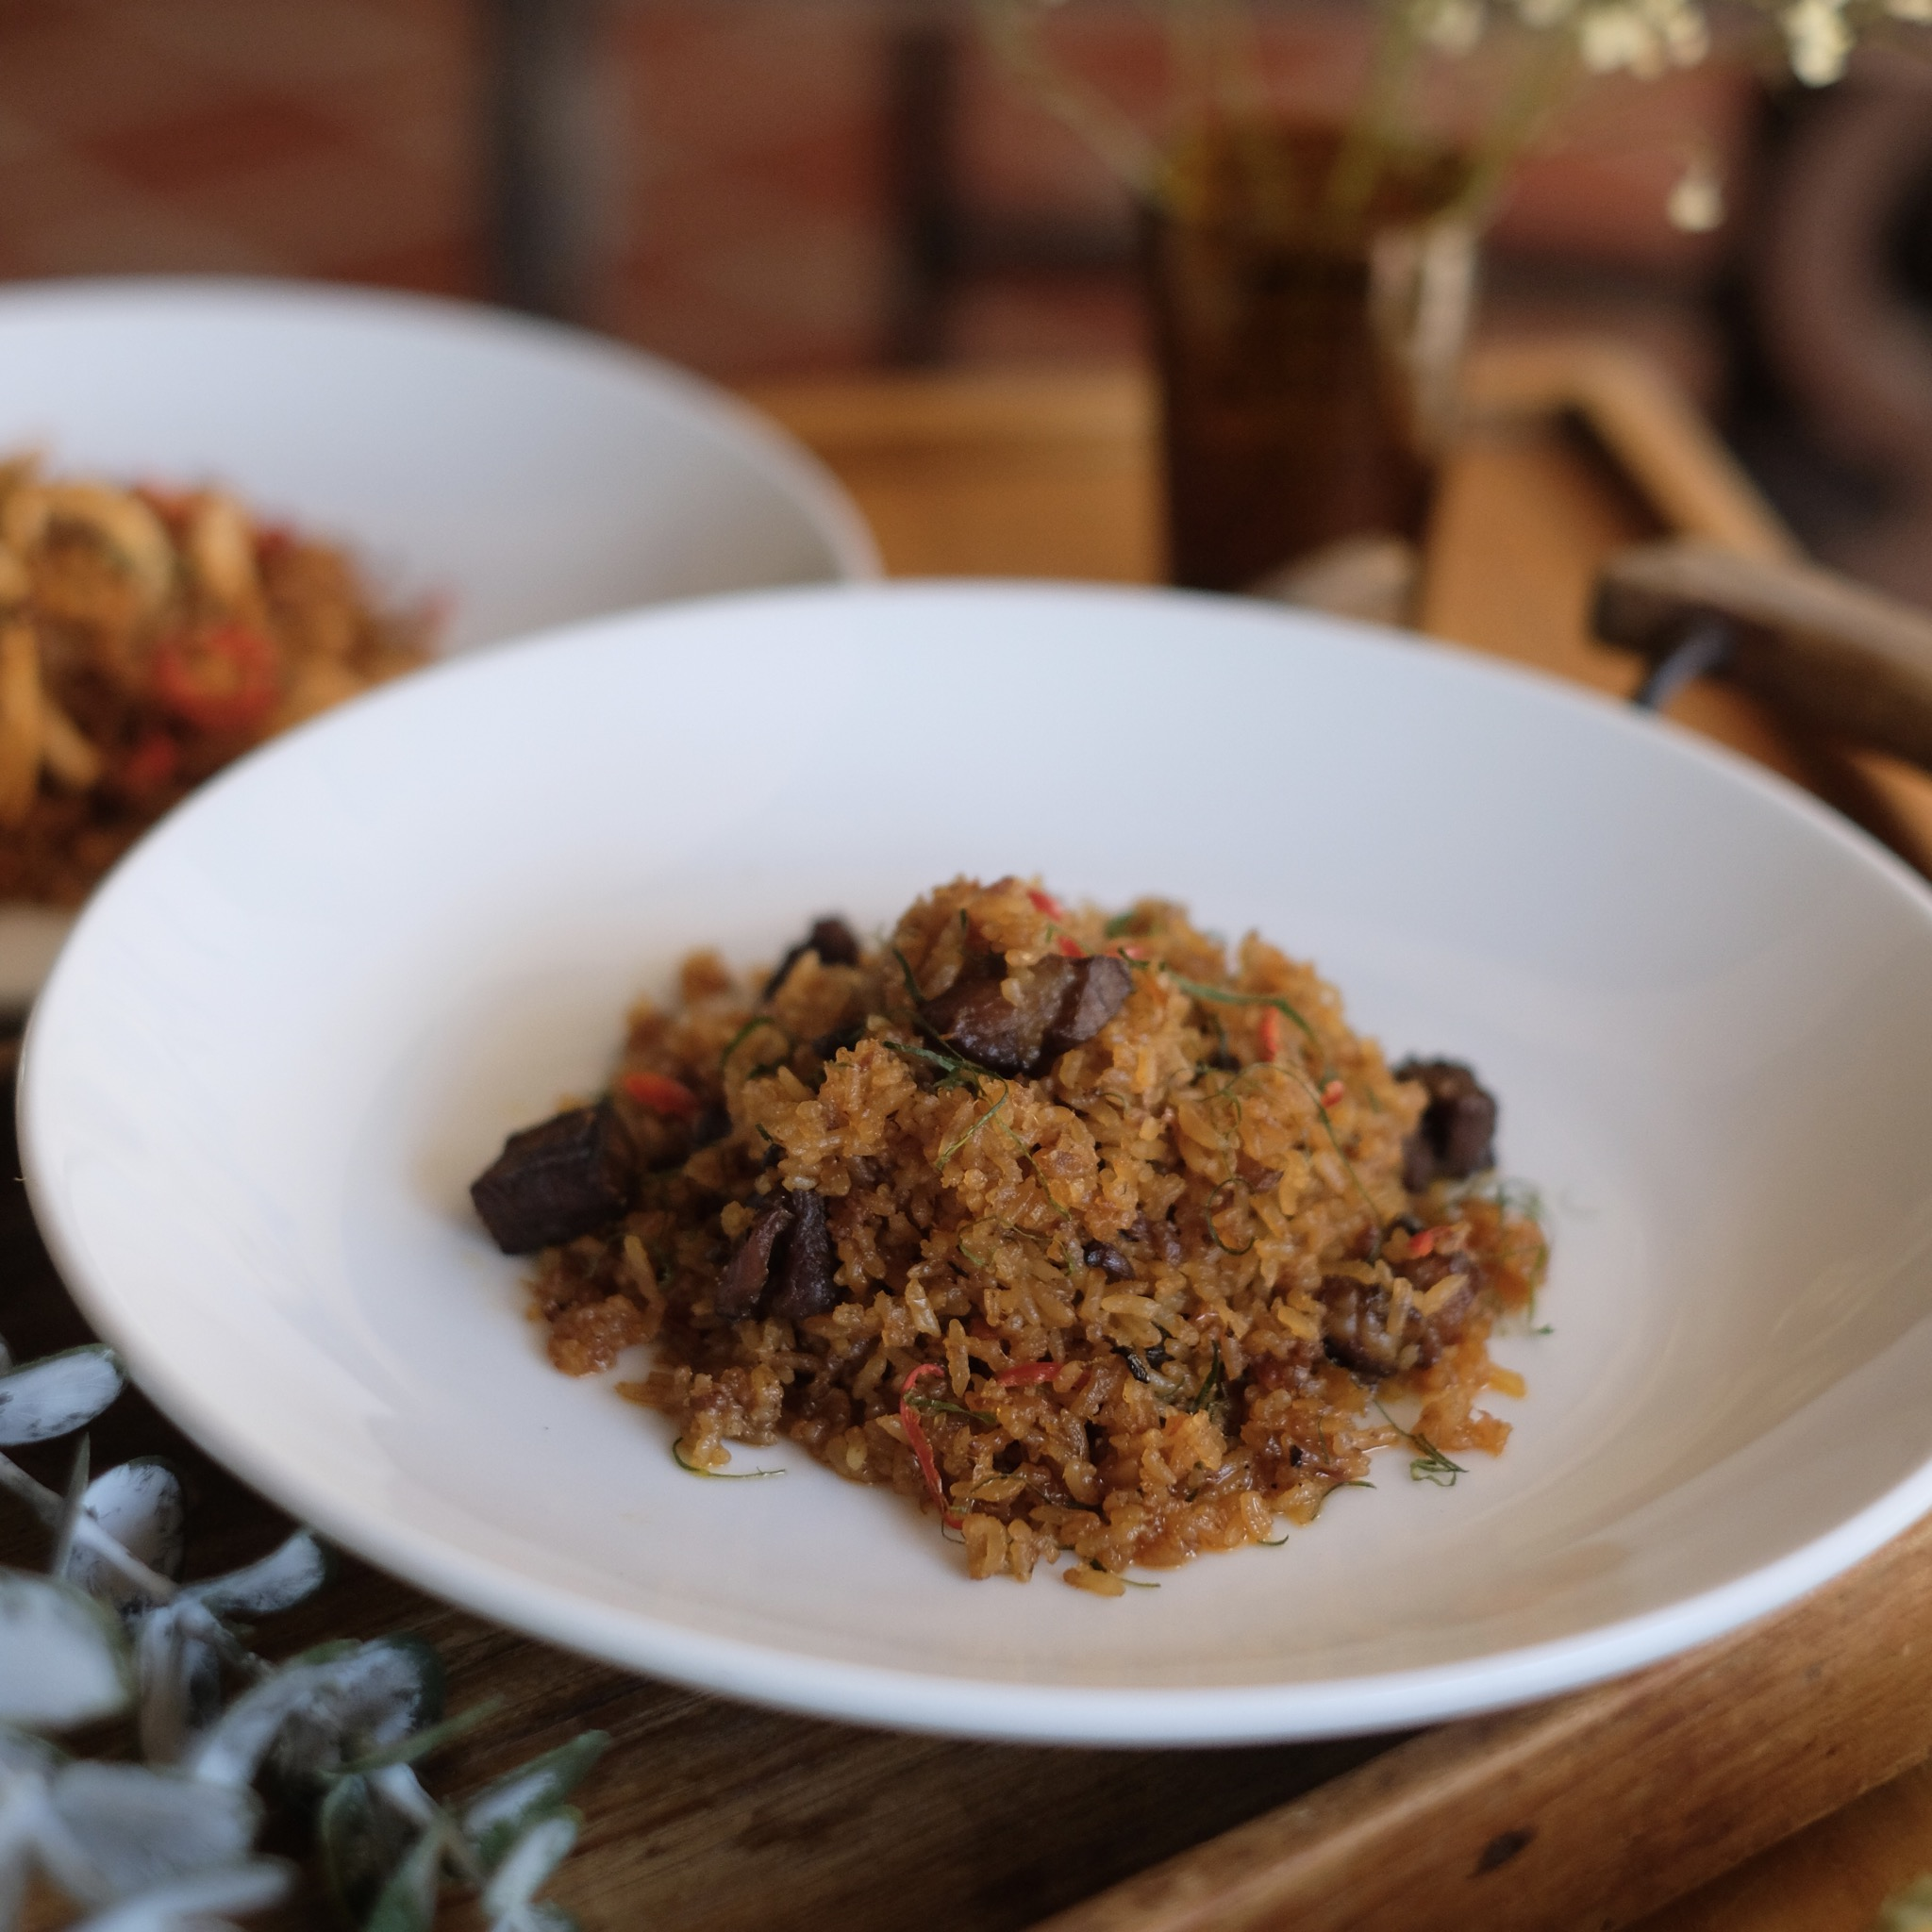 Panang Fried Rice with Marinated Pork or Prawns (Paella Style)